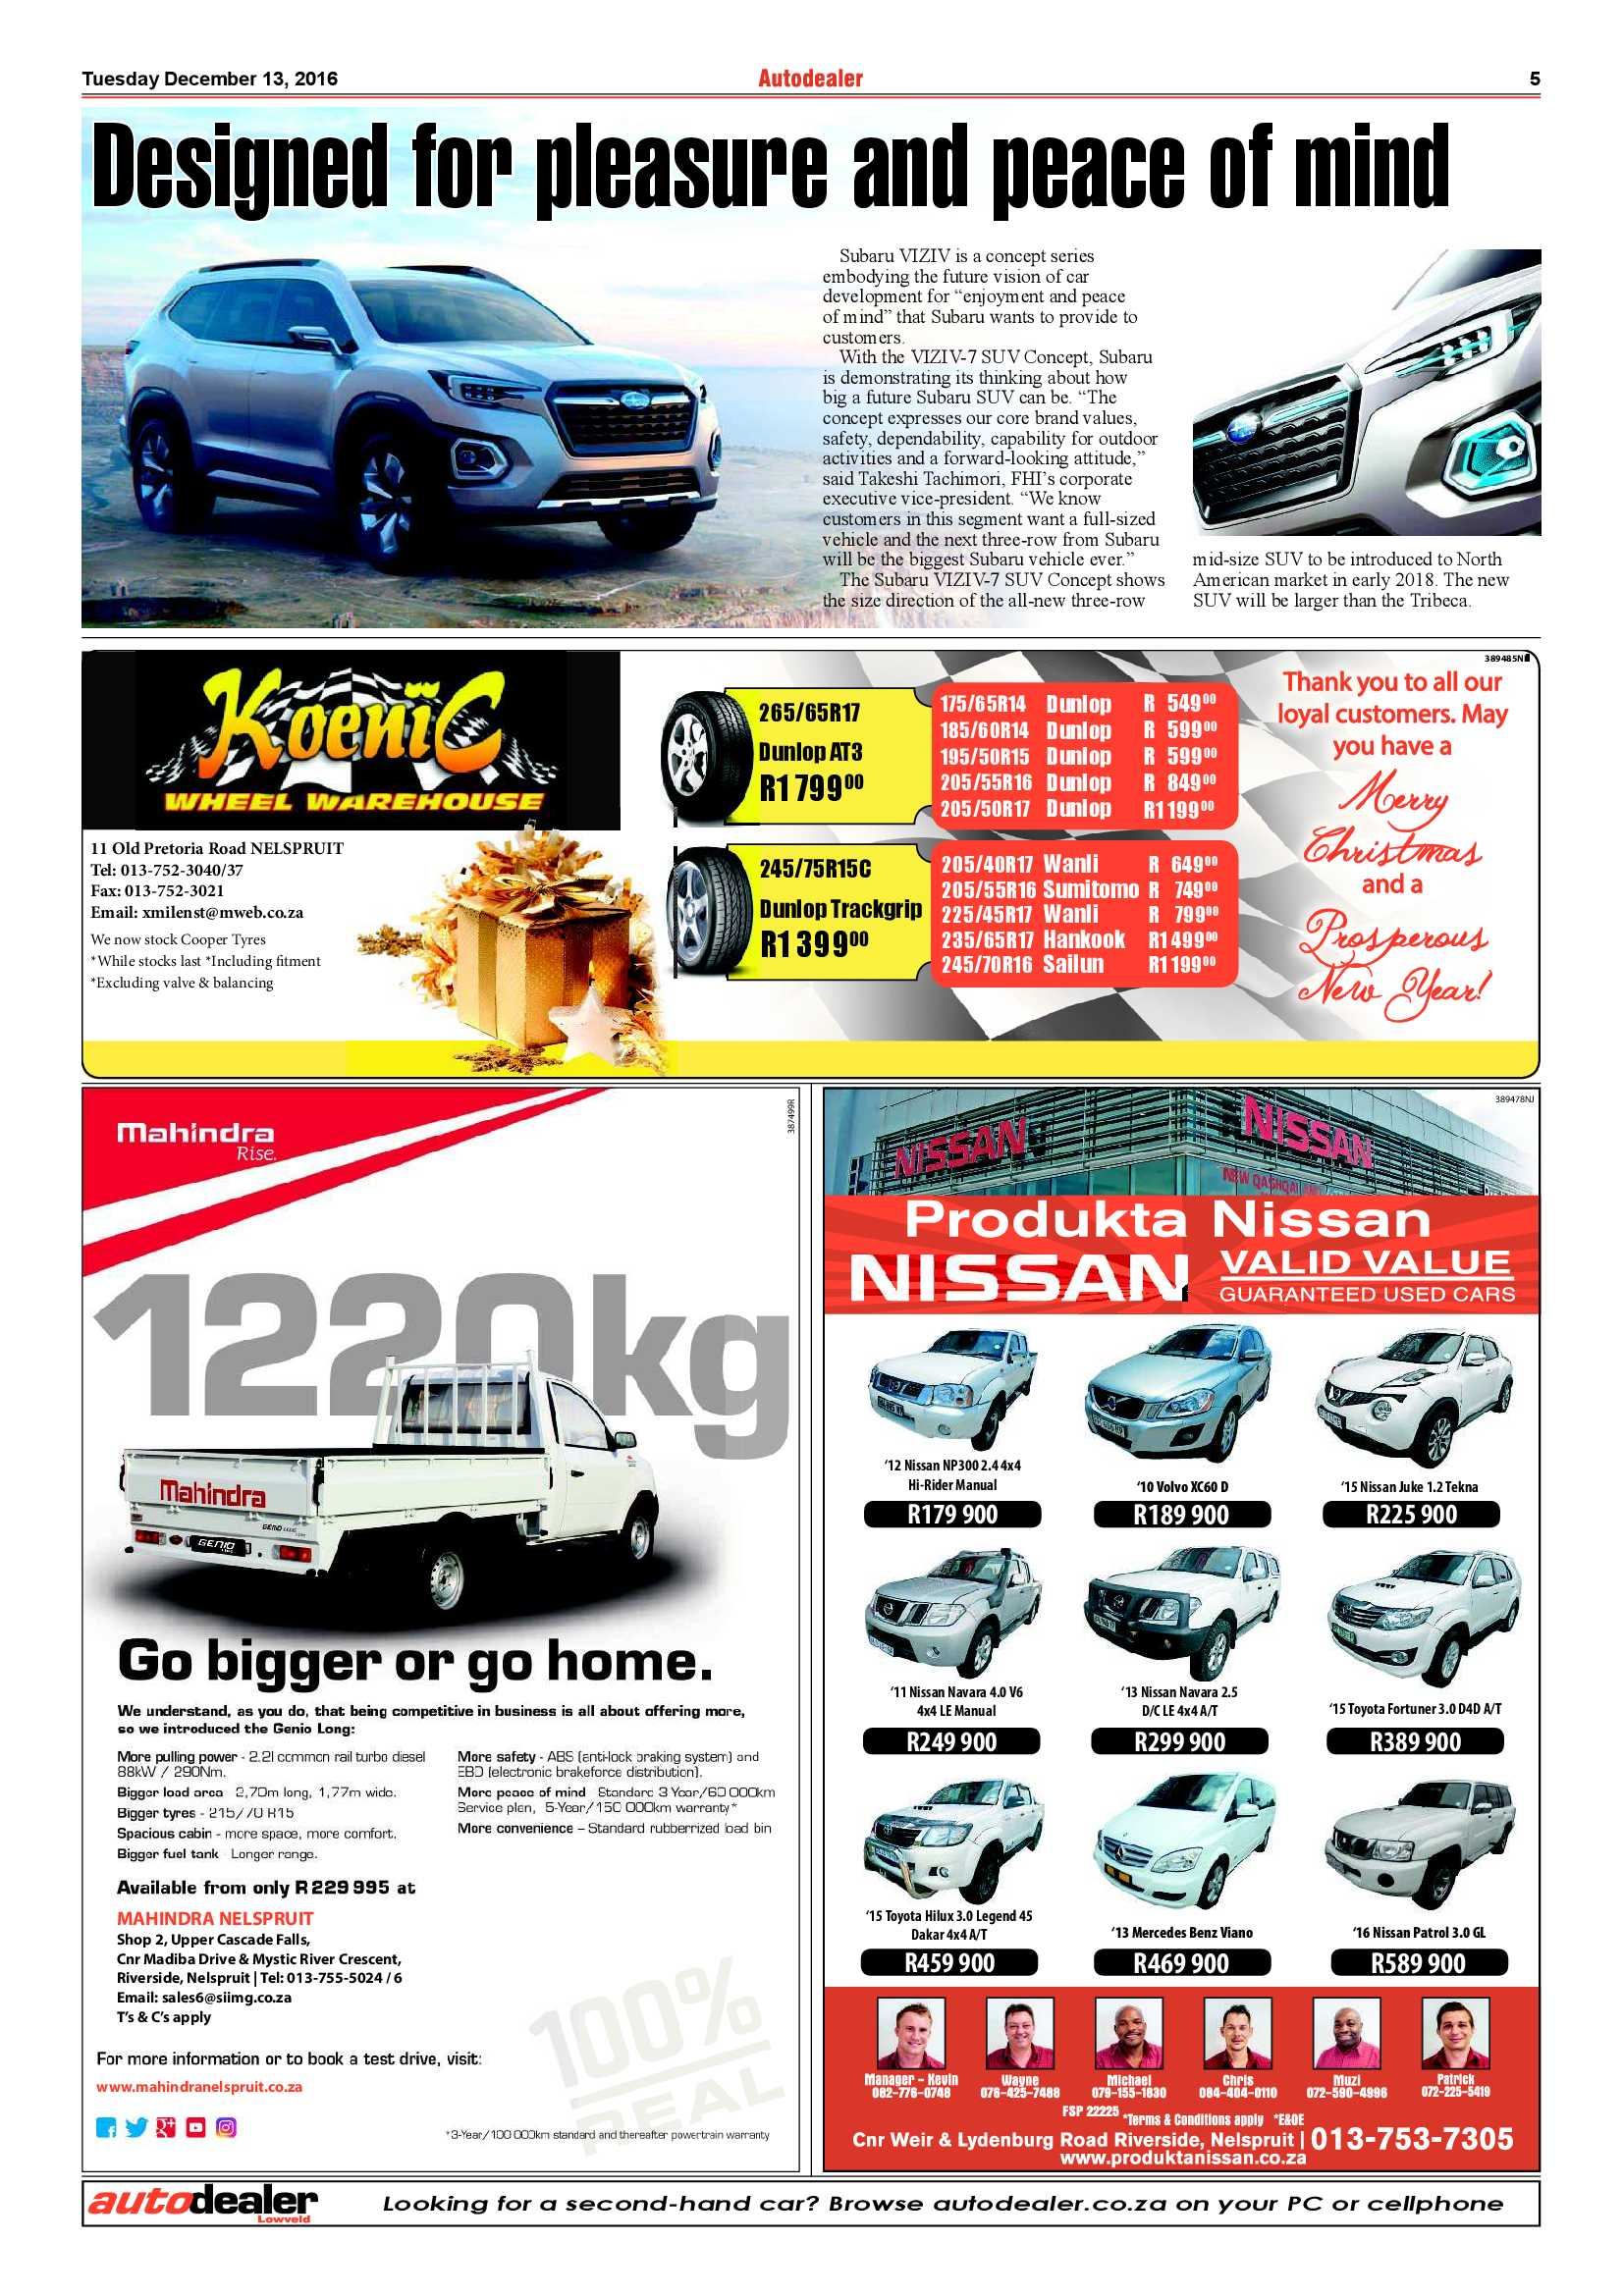 autodealer-13-december-2016-epapers-page-4